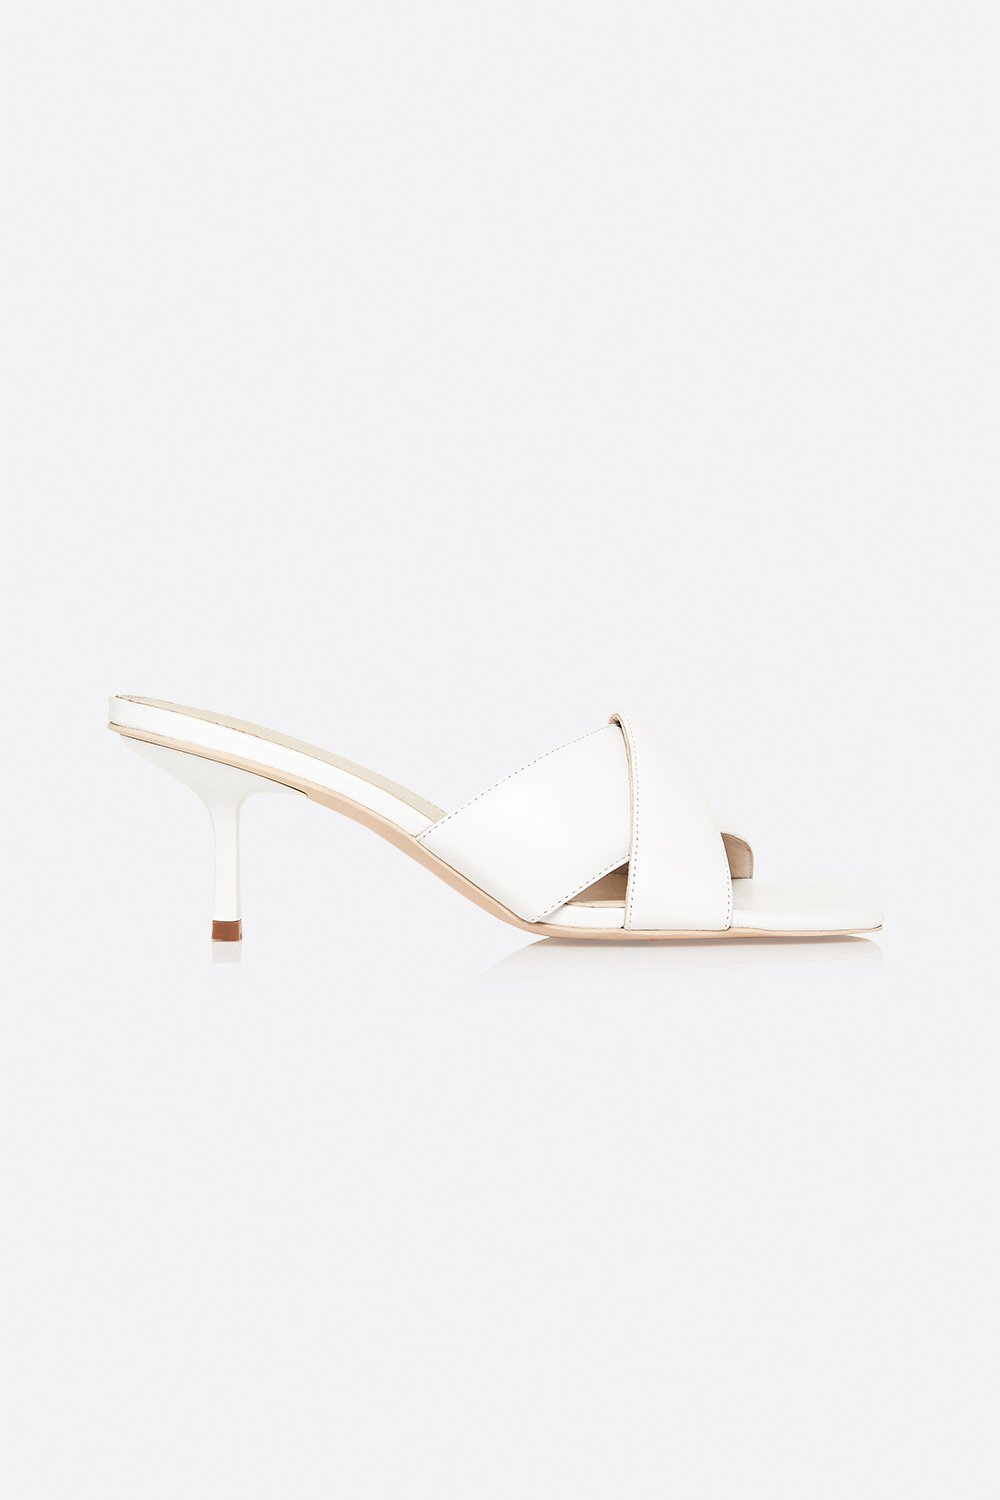 Manning Cartell Instant Gratification Padded Mule in White